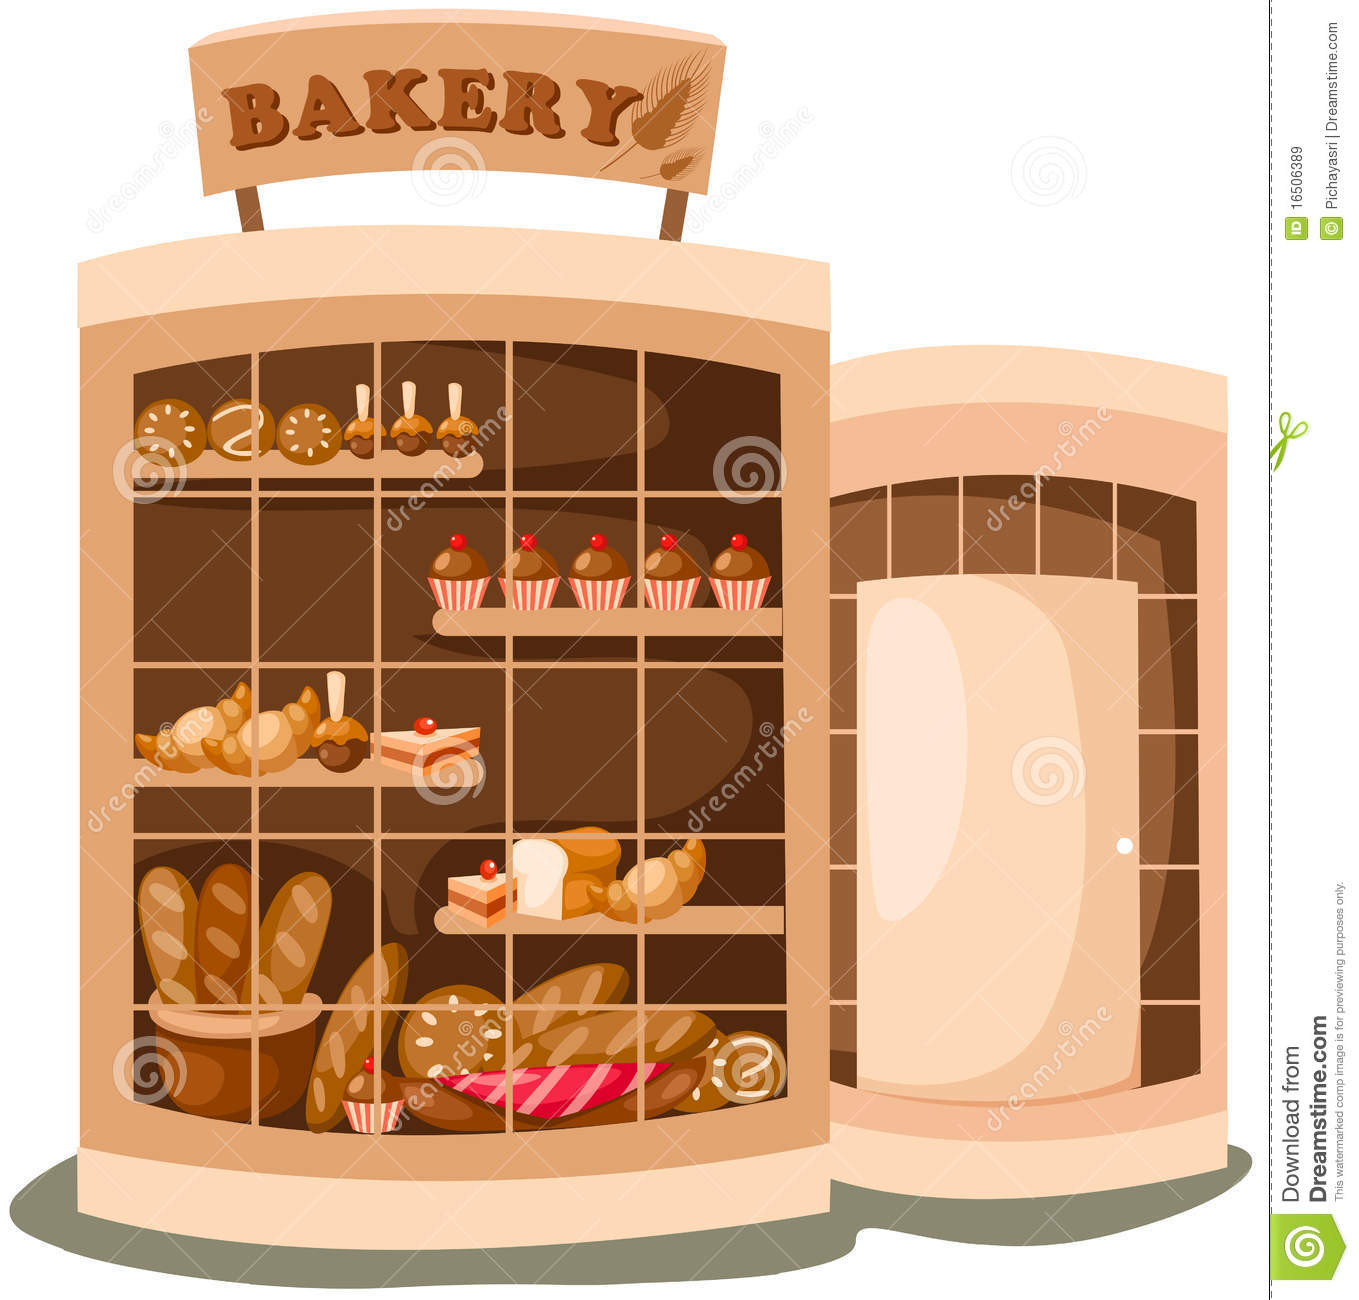 Display clipart baker Building Clipart Bakery